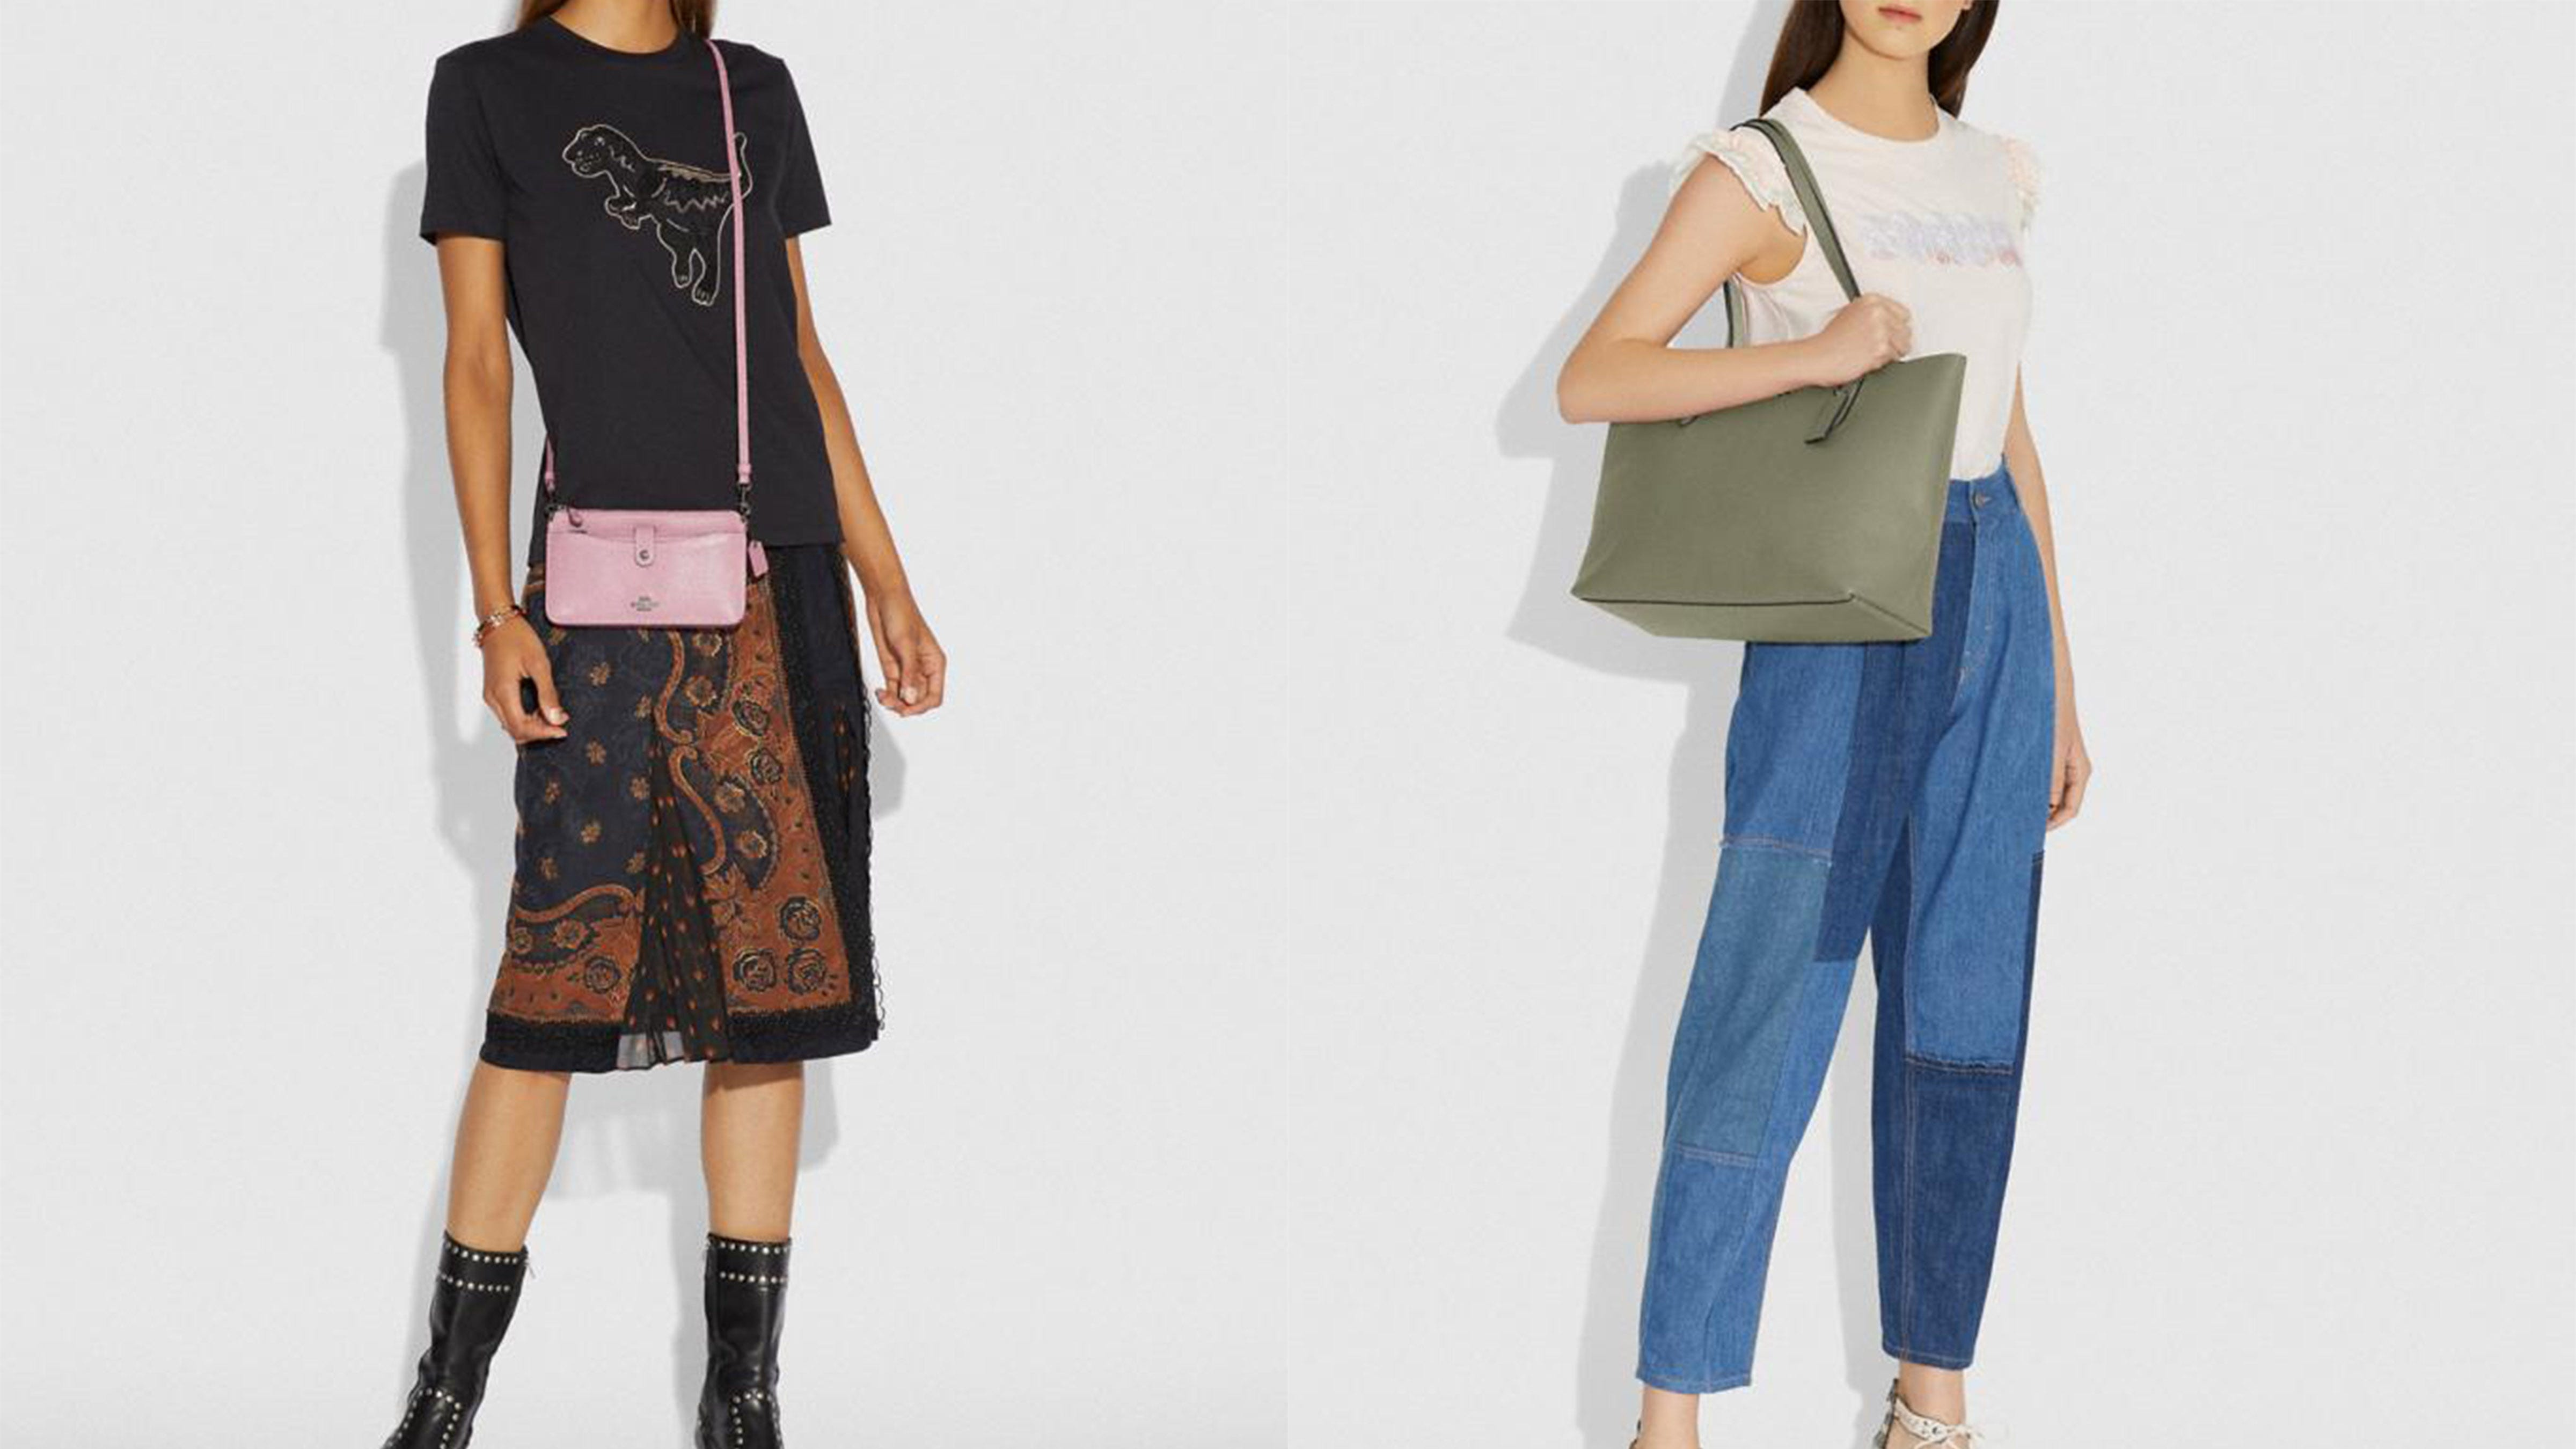 Coach Sale The Designer Brand Is Discounting Its Best Totes And More